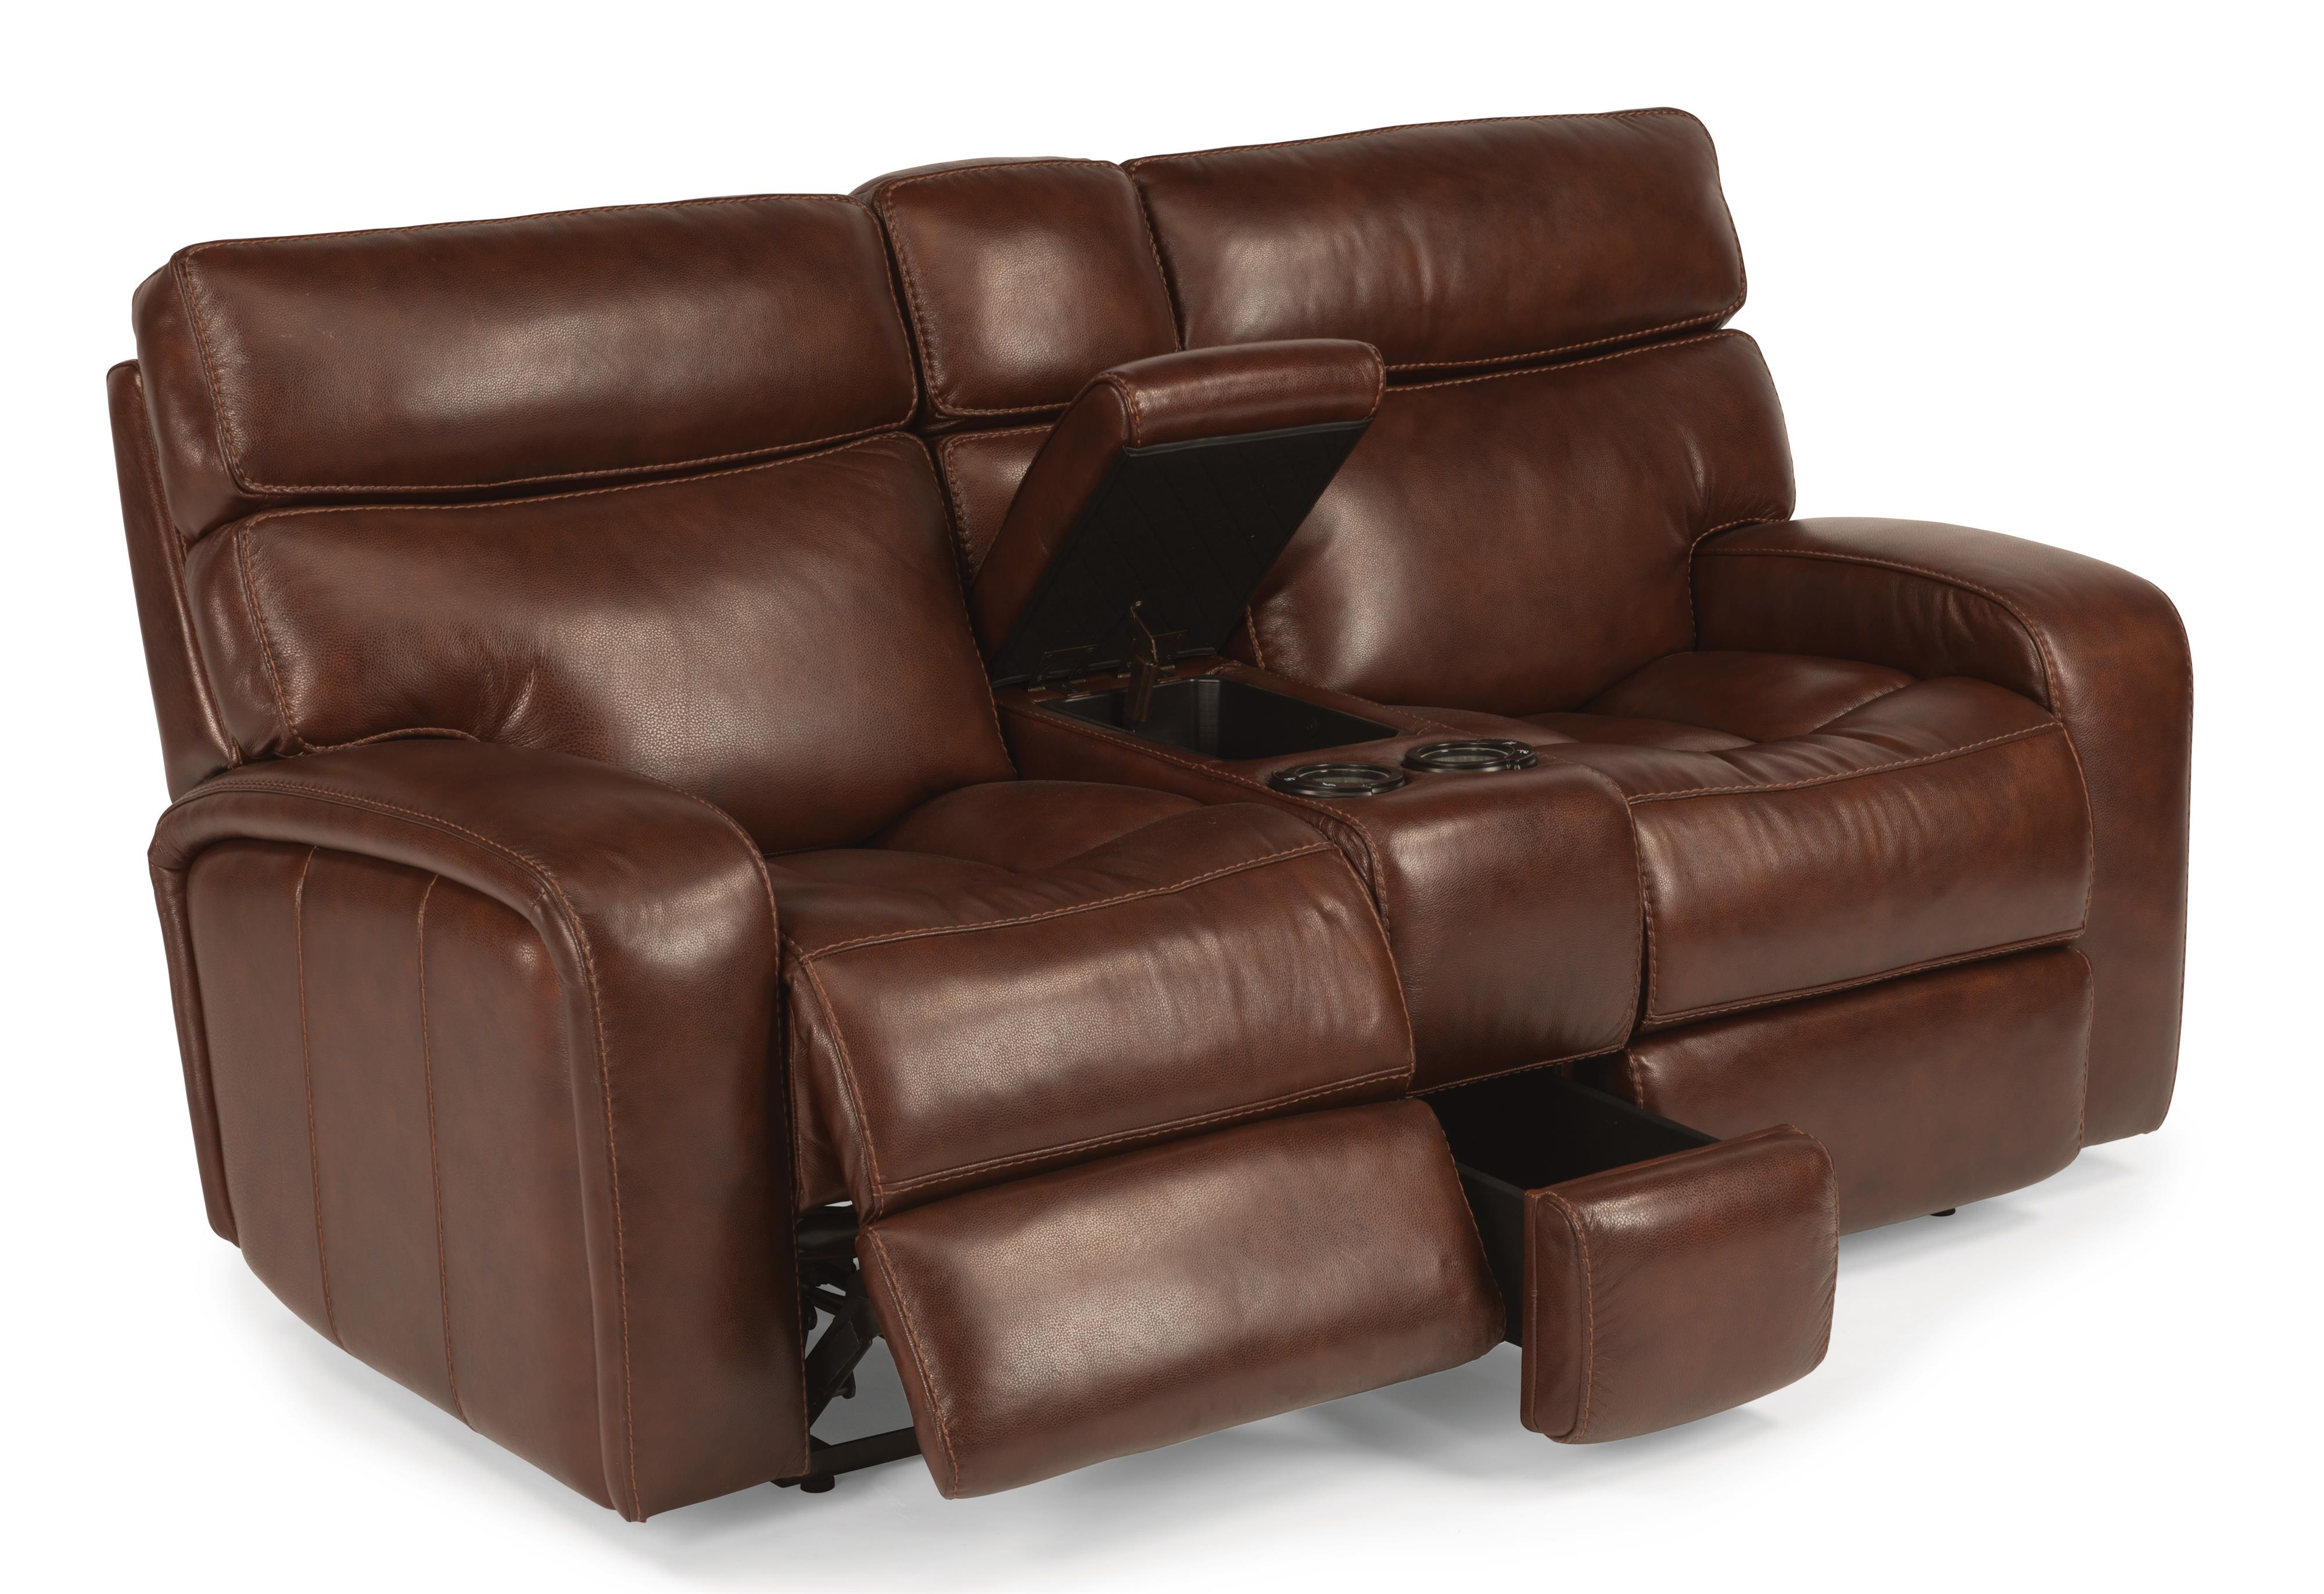 Flexsteel Latitudes - Bixby Power Gliding Reclining Loveseat w/ Console - Item Number: 1129-604P